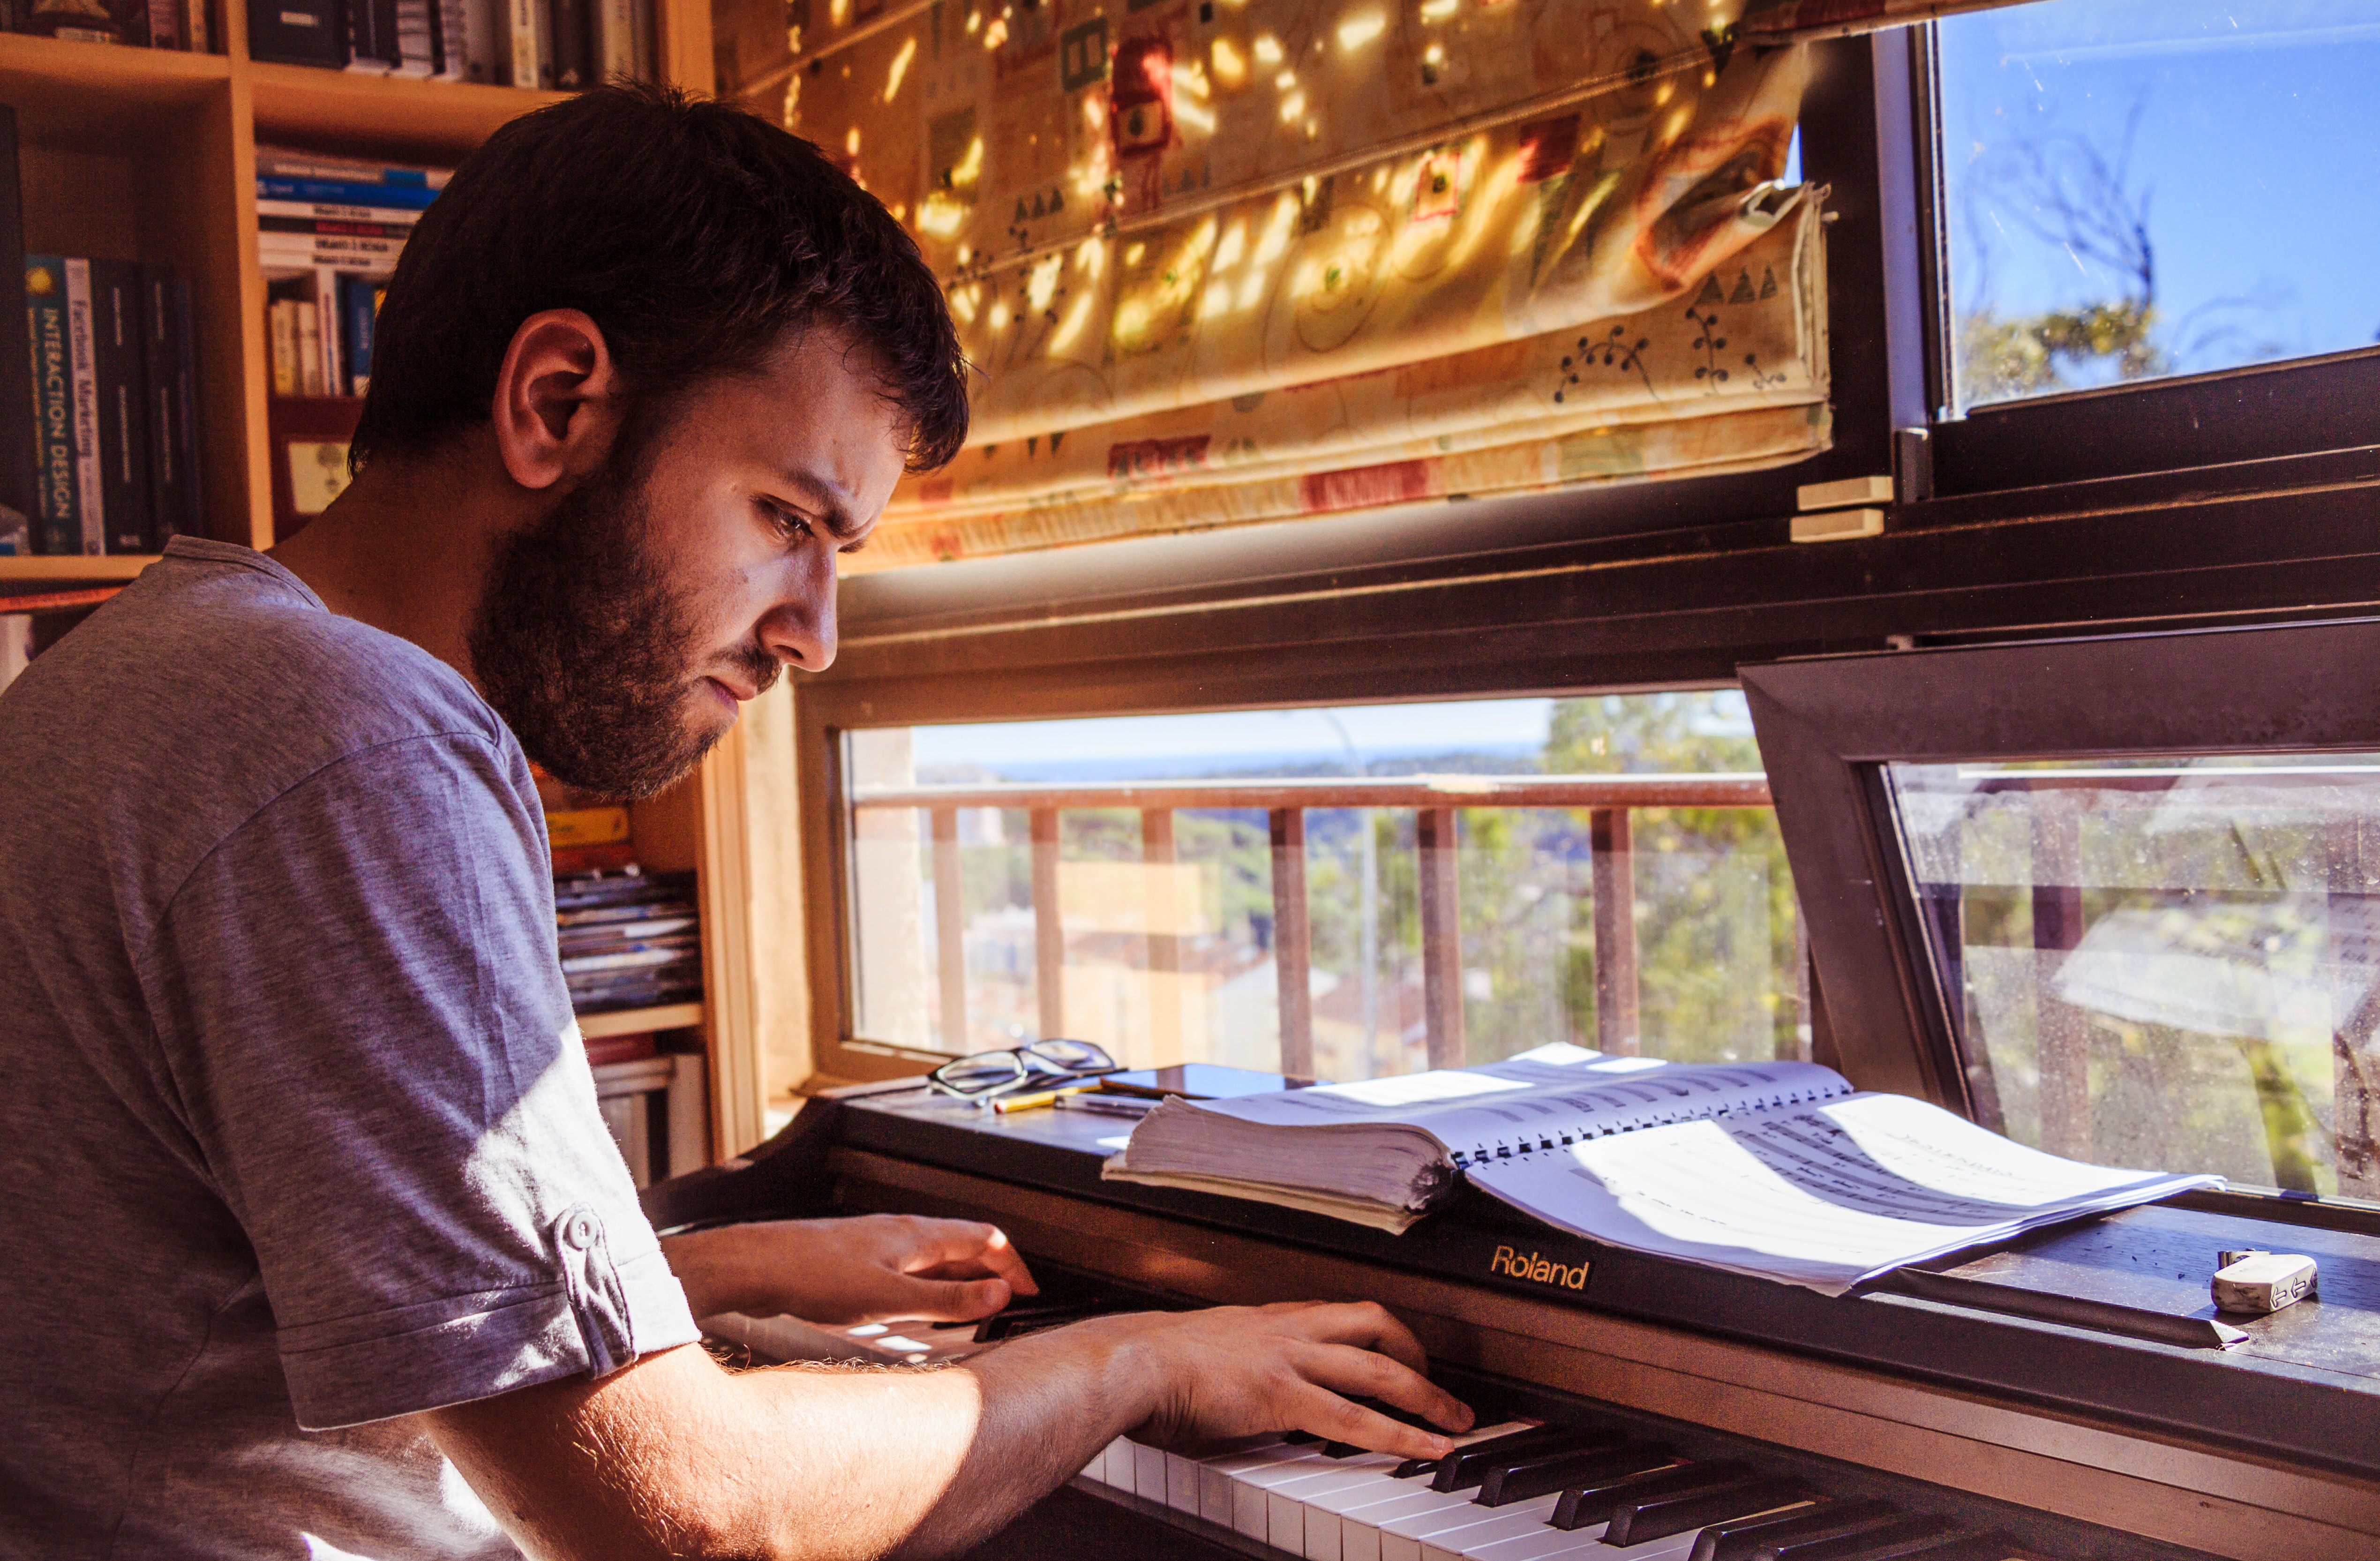 A bearded man plays the Roland piano intensely by the windows with the outdoors in view.